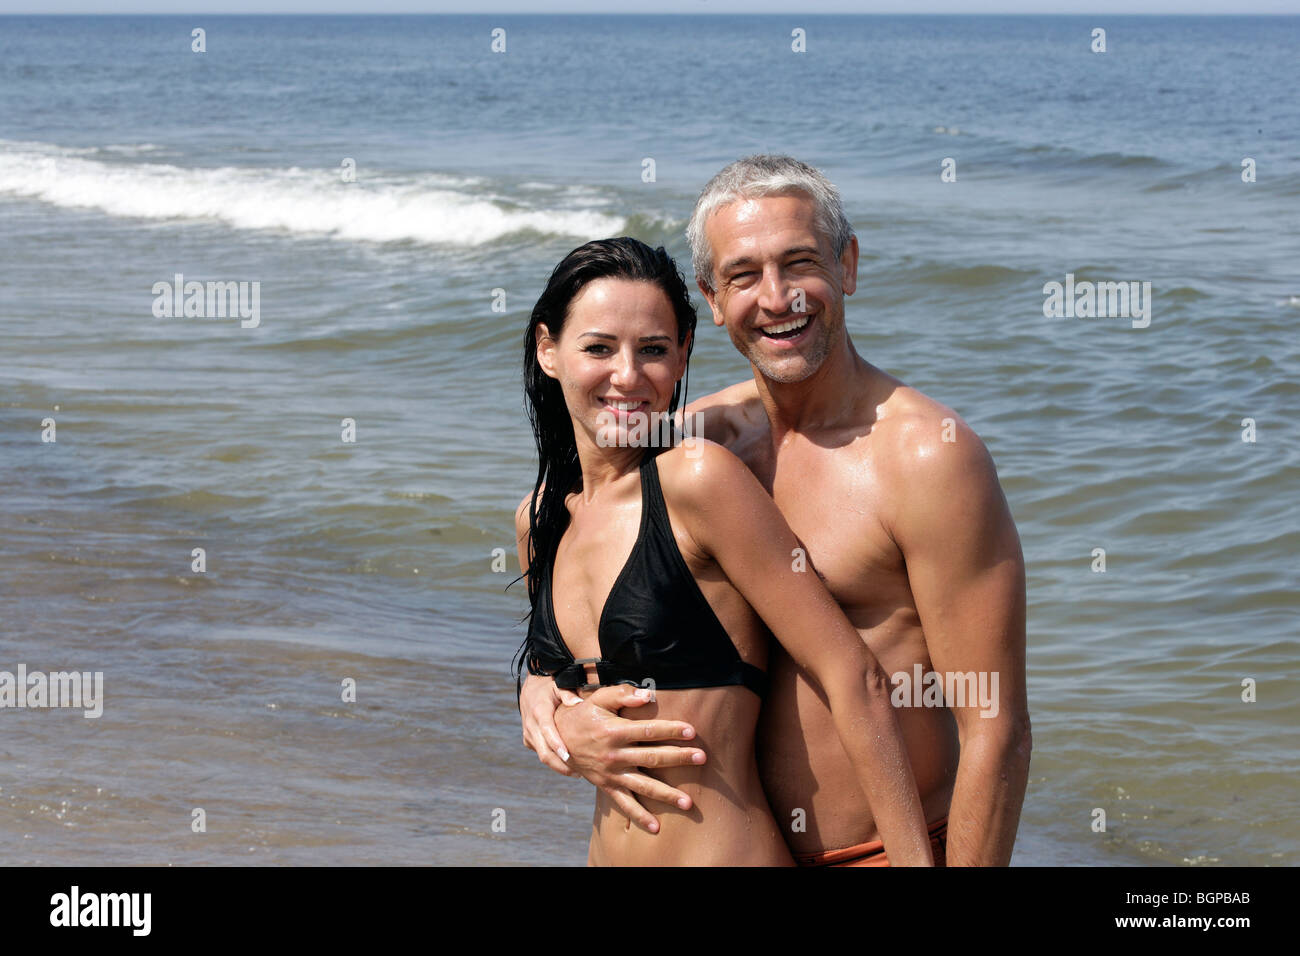 Mature beach photos